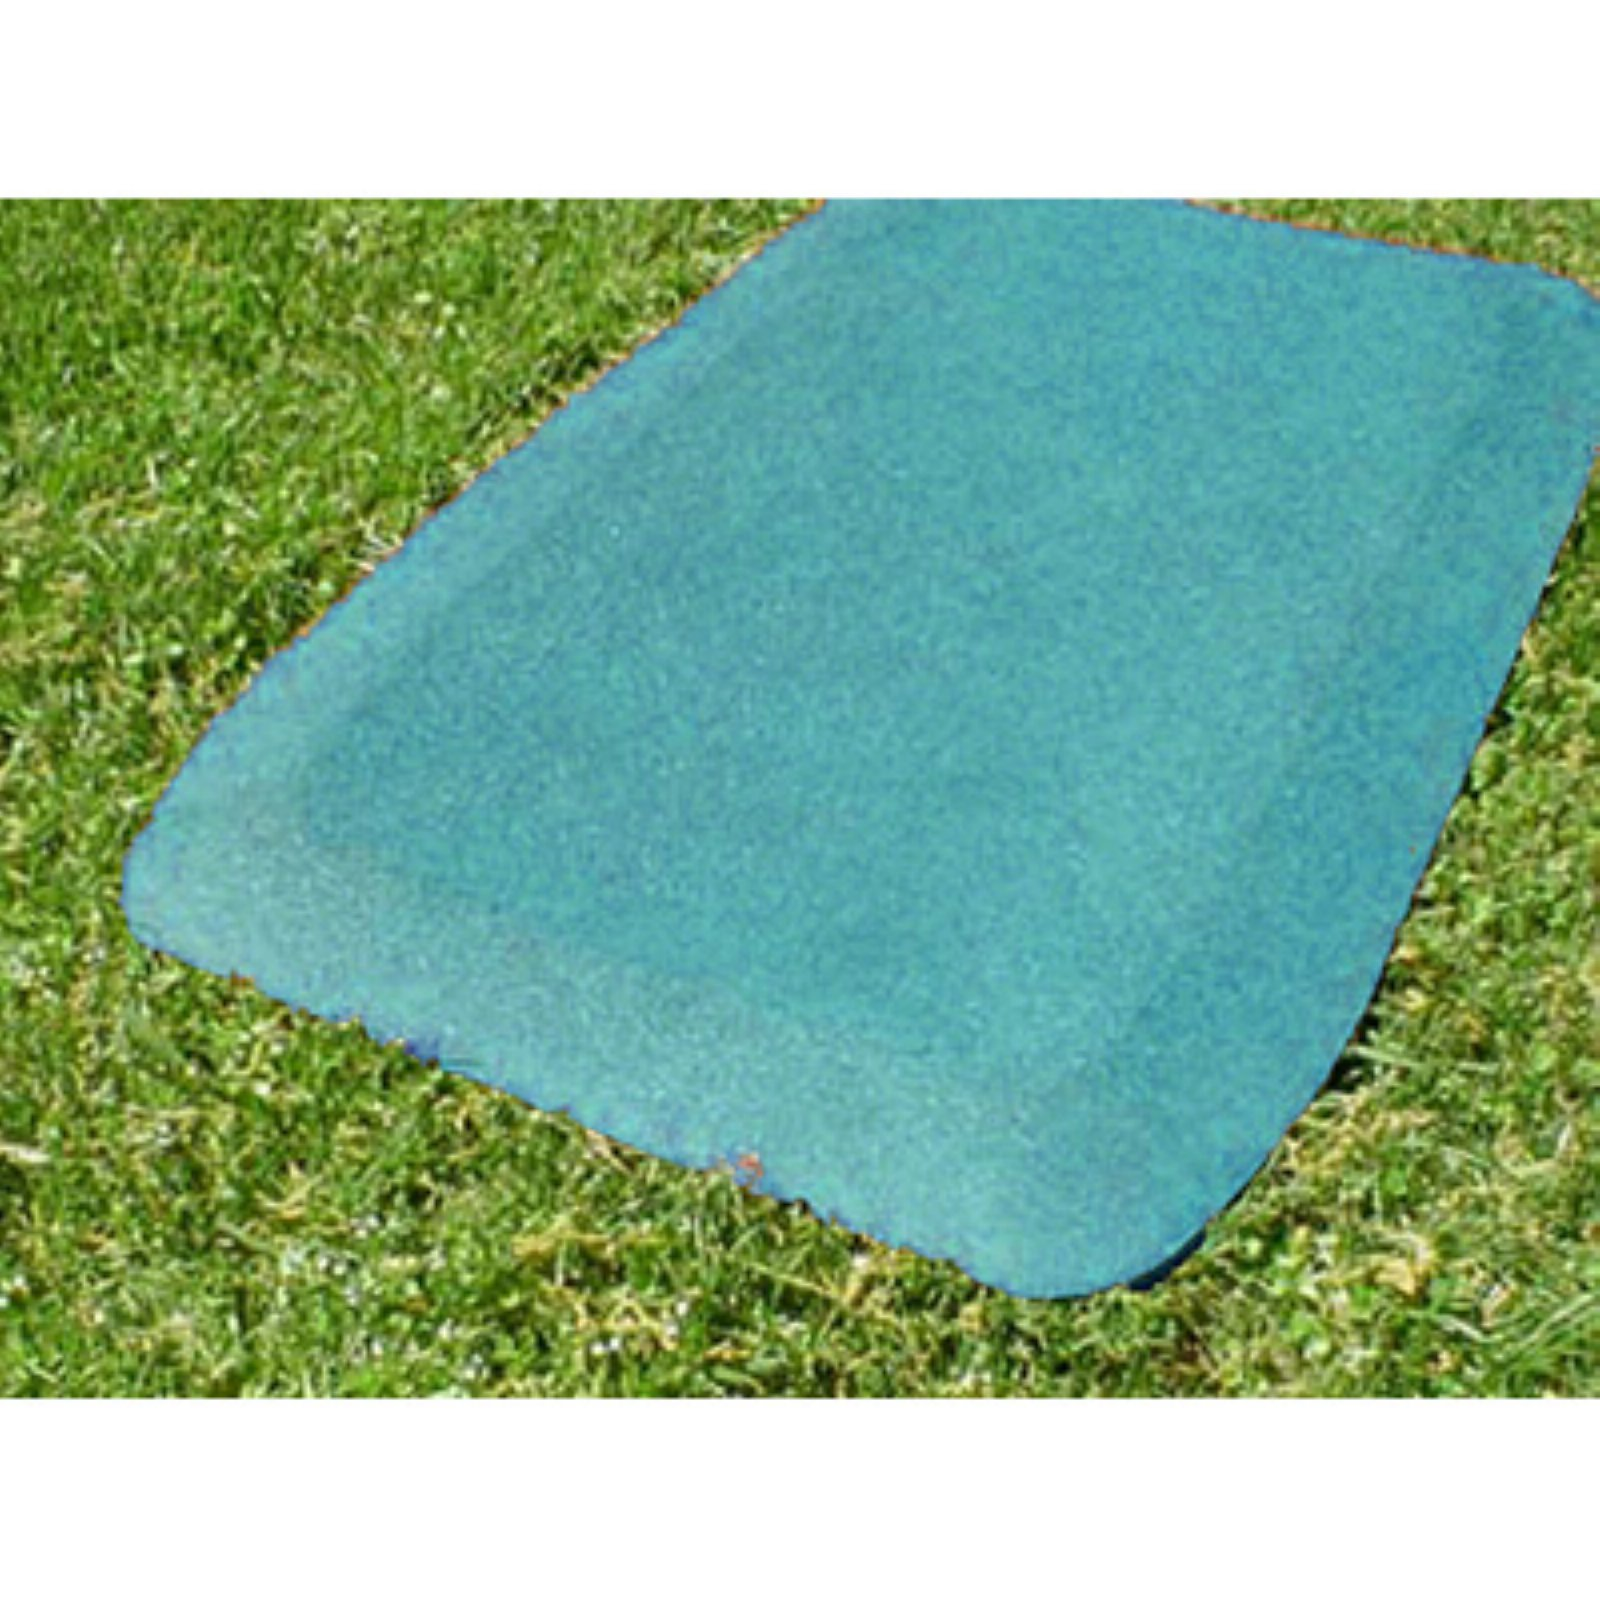 Kidwise Set of 2 1.5 Inch Fanny Pads